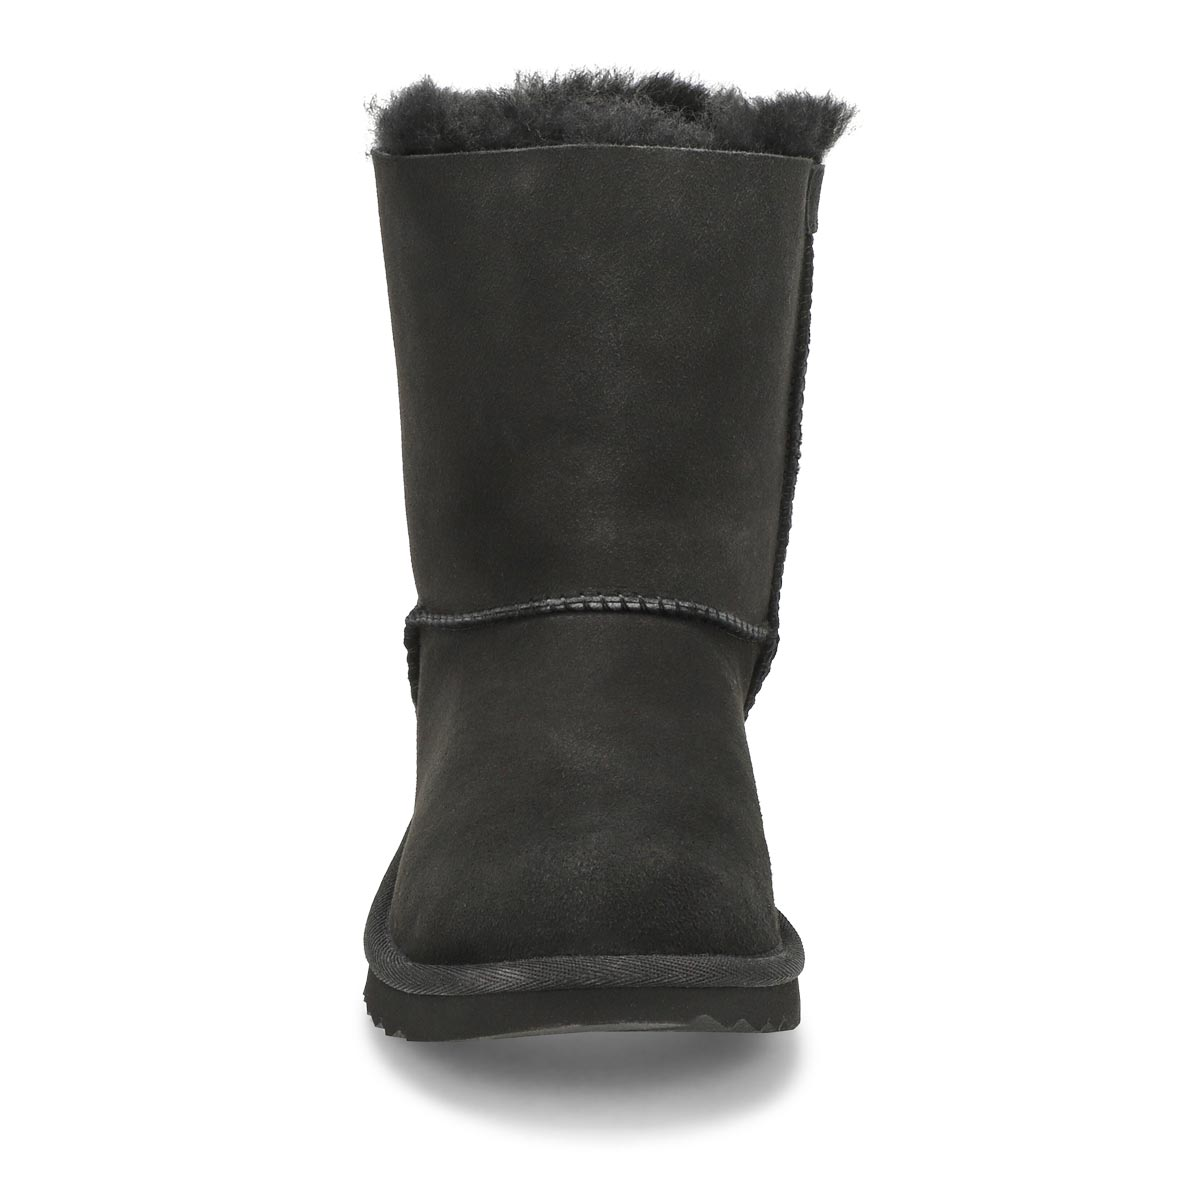 Grls Bailey Bow II black sheepskin boot